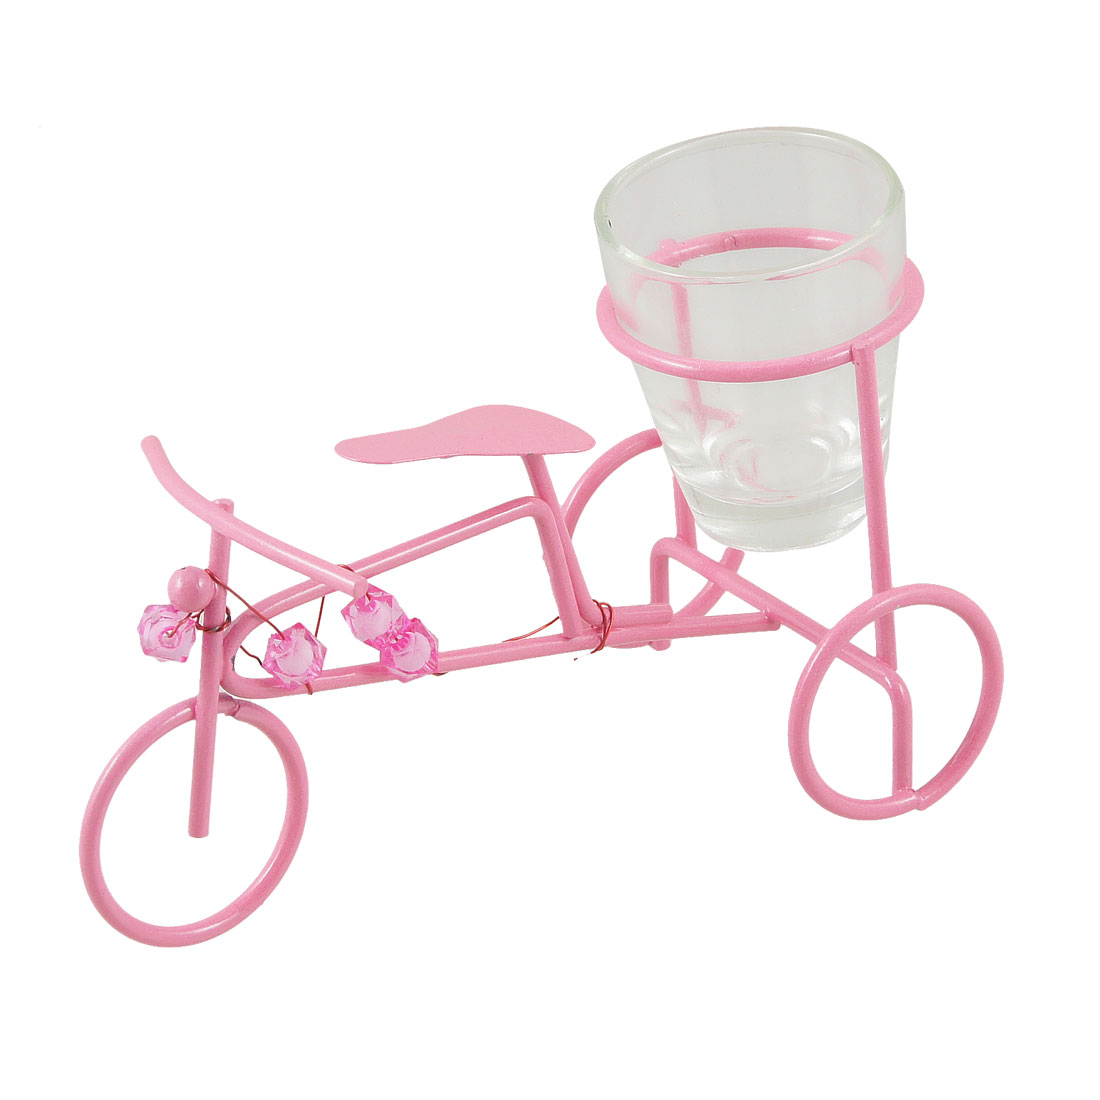 Pink Metal Bike Shaped Design Wine Cup Adornment Artware w Clear Box